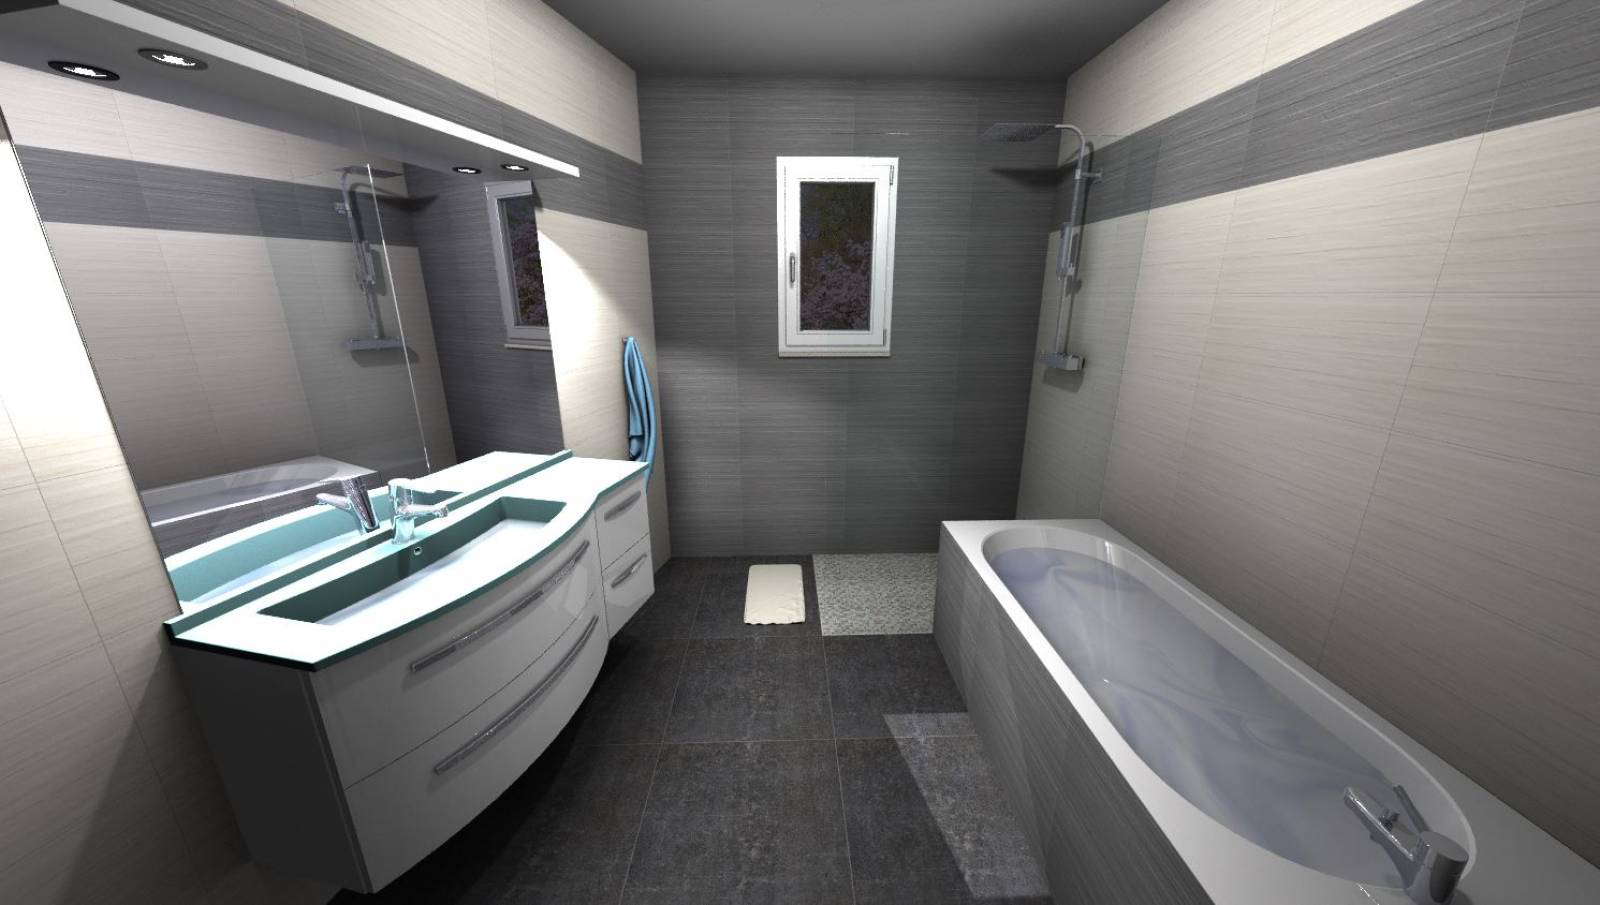 conception de salle de bain cl en main libourne vente et pose de carrelage salle de bain. Black Bedroom Furniture Sets. Home Design Ideas